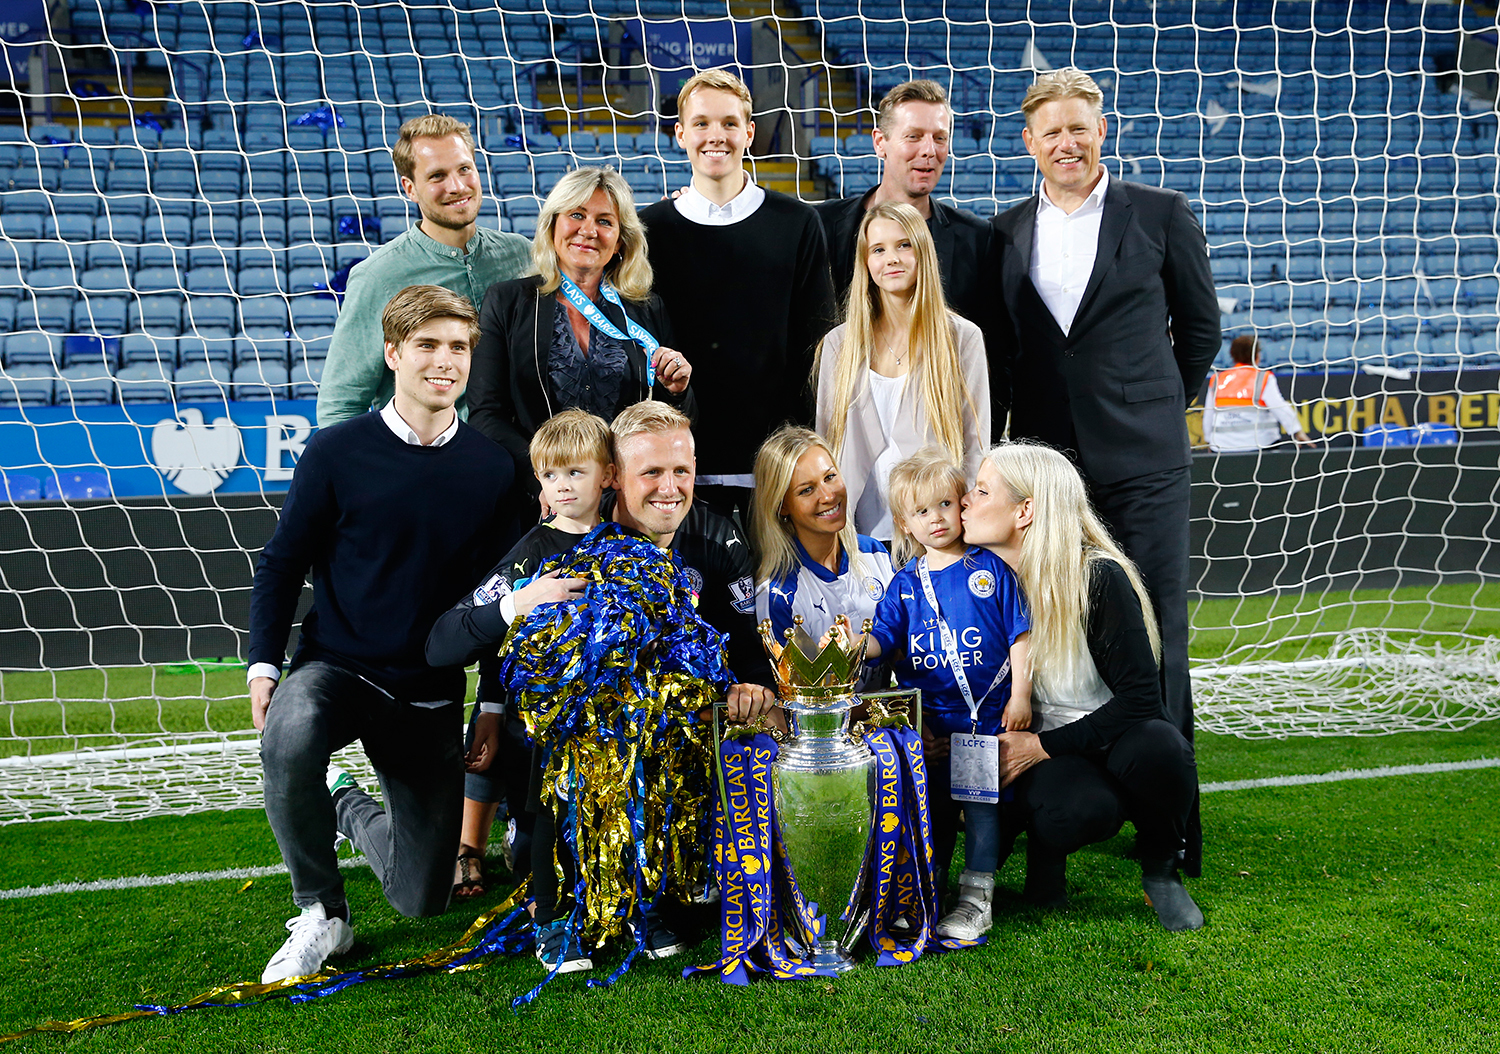 Leicester goalkeeper Kasper Schmeichel poses with his father, former Manchester United goalkeeper Peter Schmeichel and their family. — Reuters